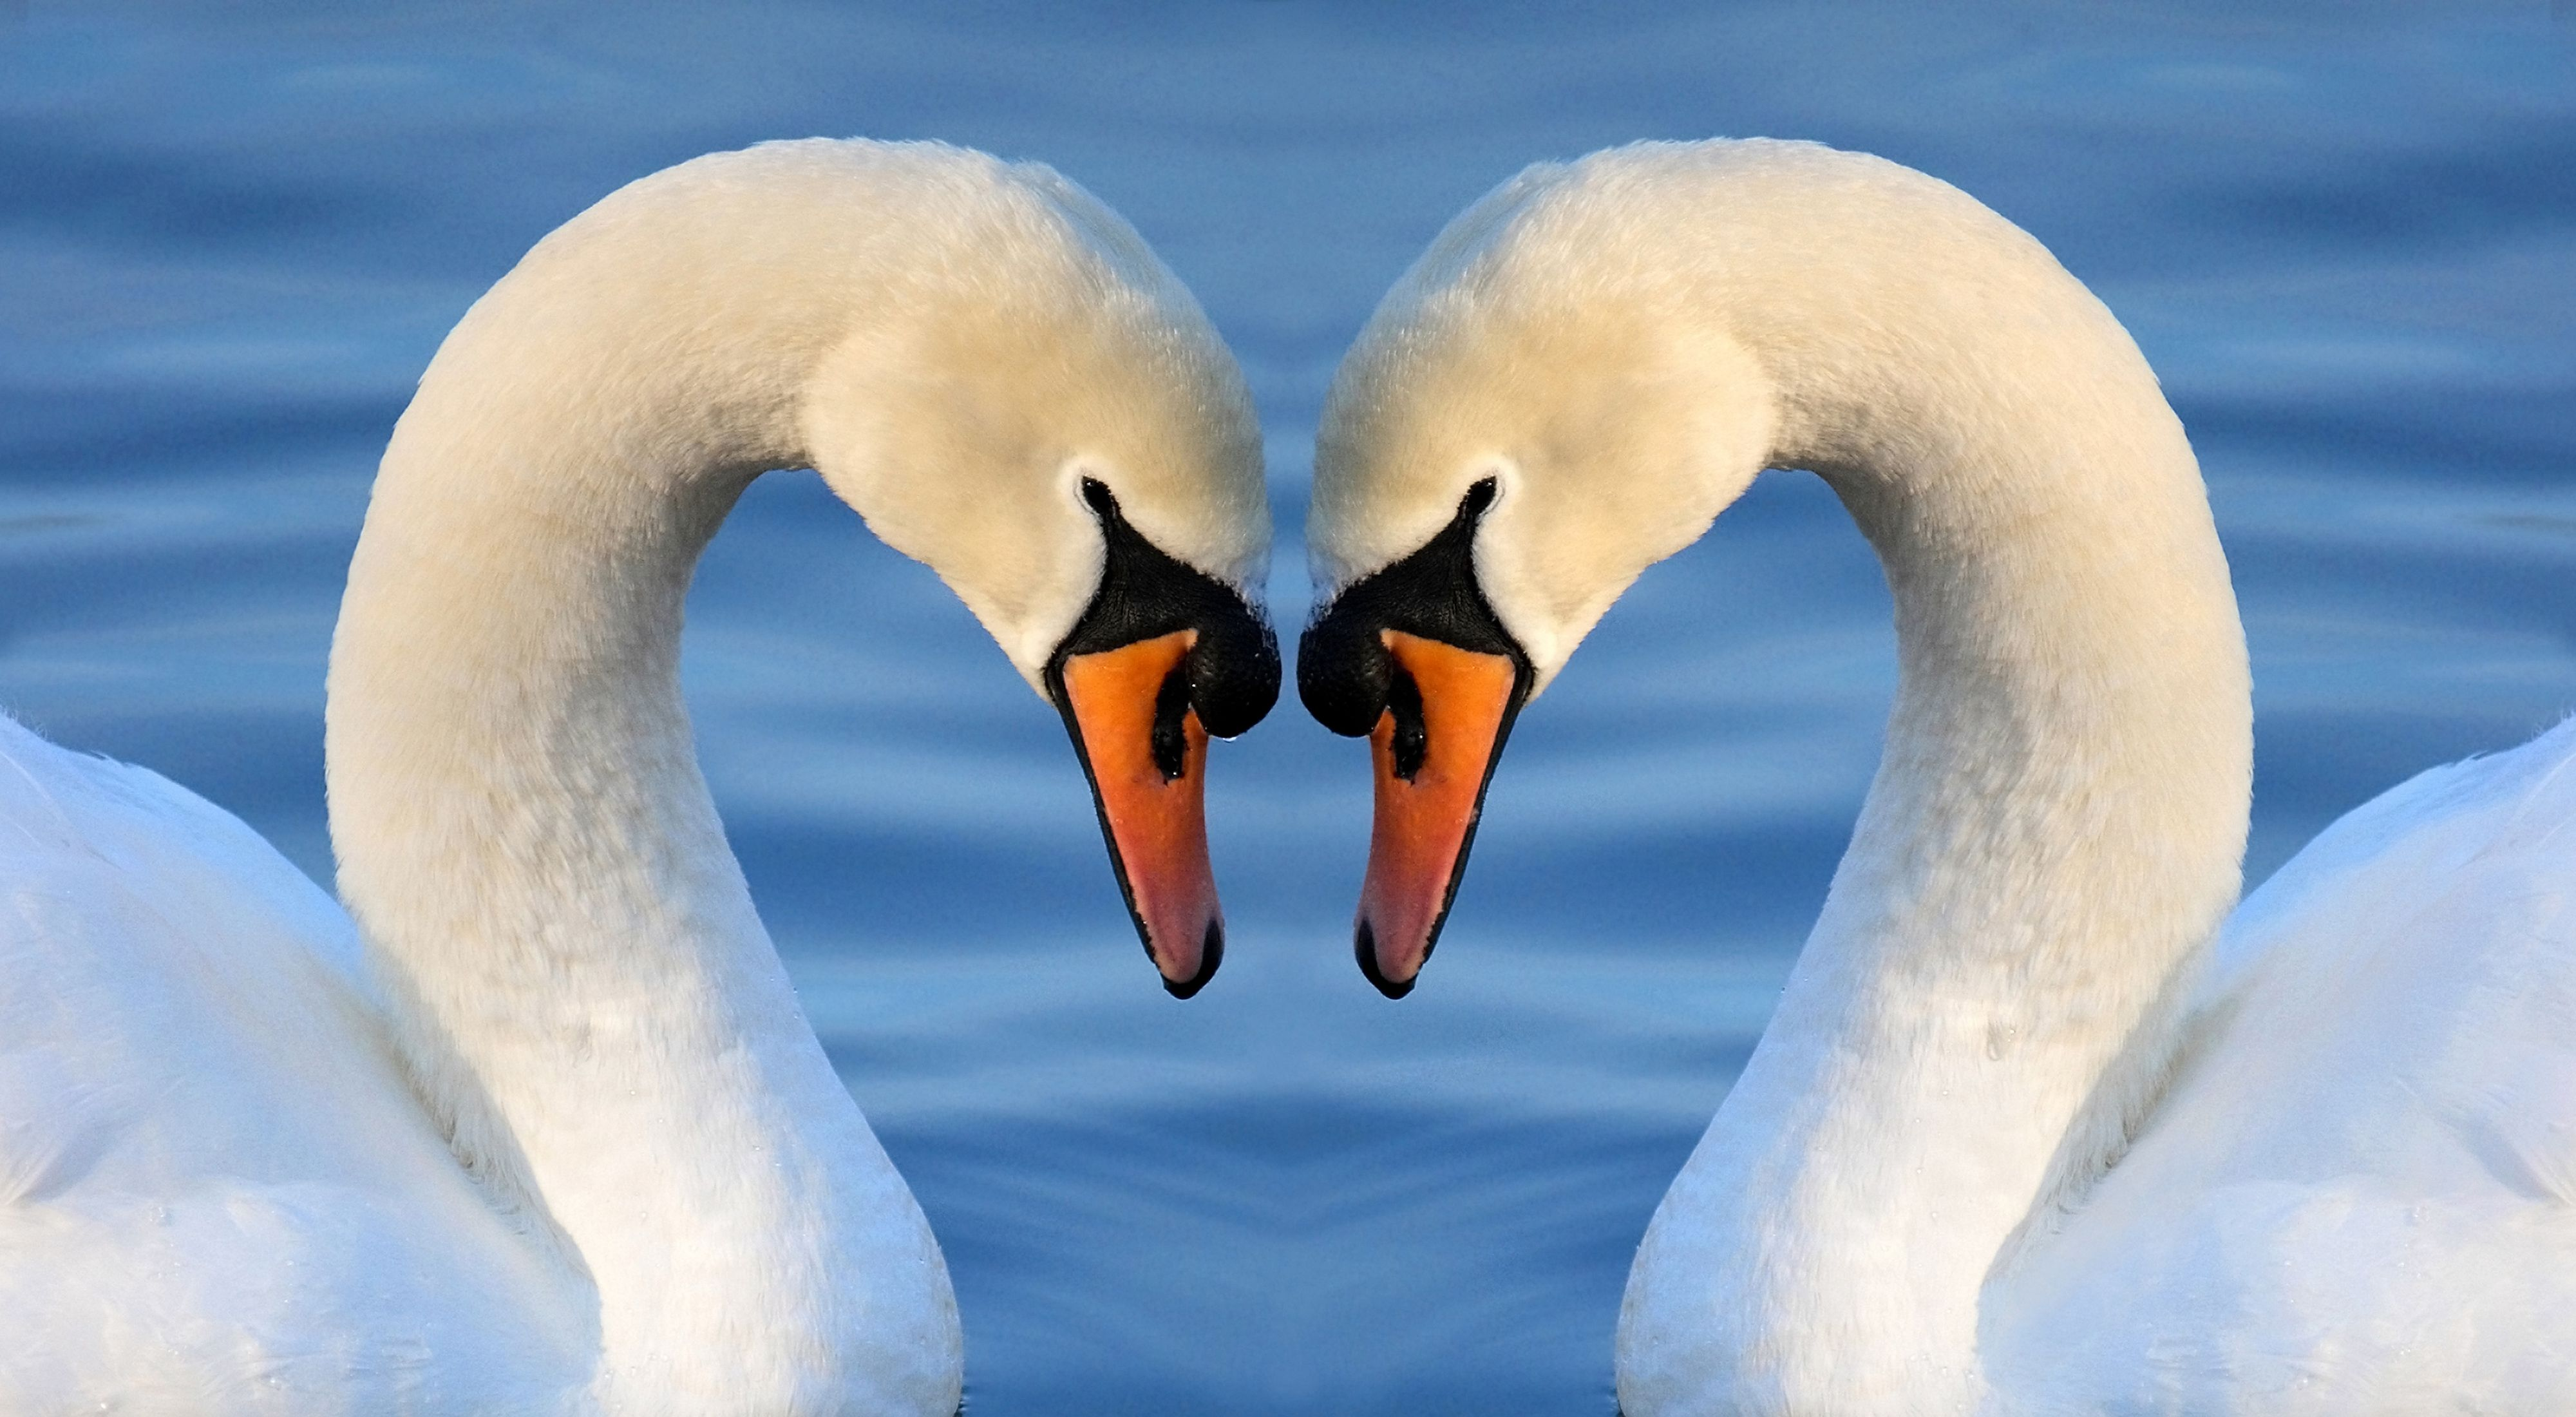 Close-up of two swans with their heads together, making a heart shape.